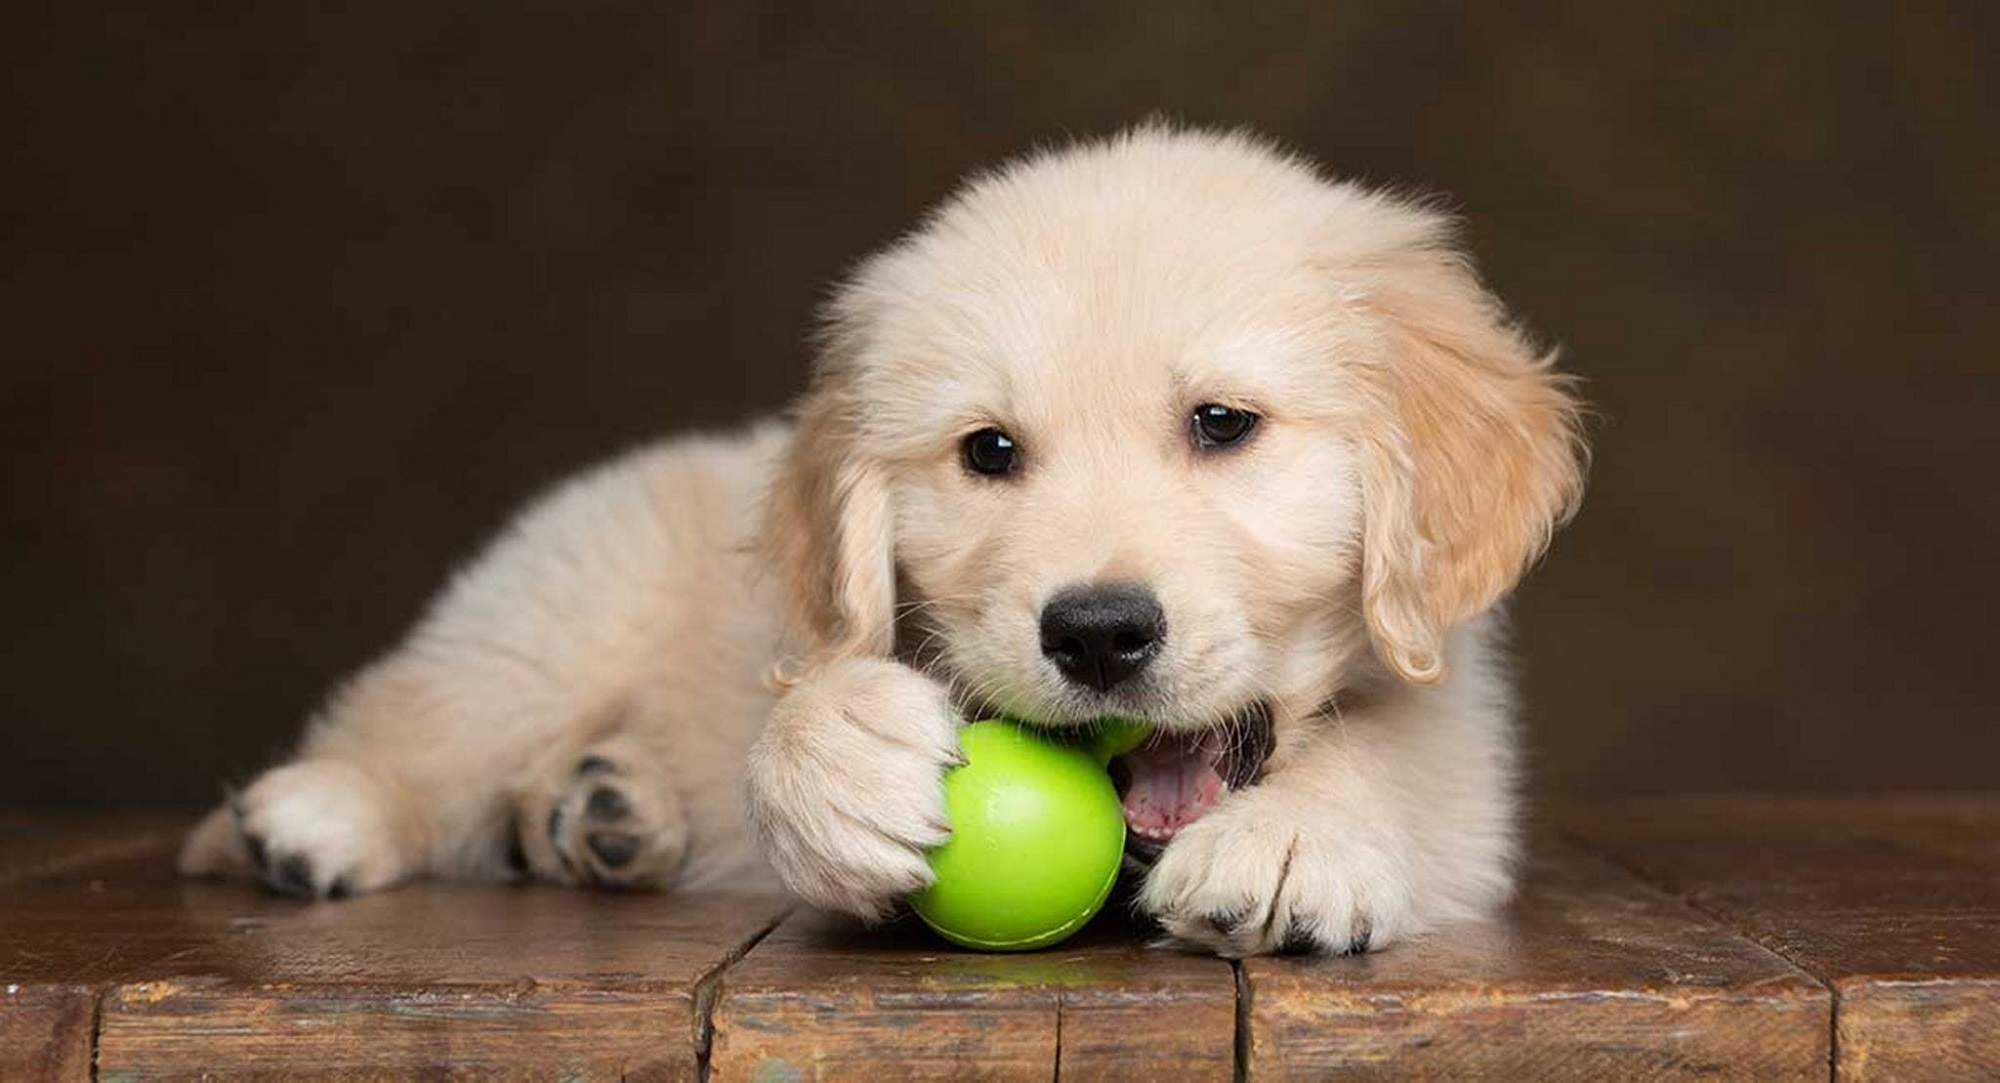 Things that you must have for your new puppy